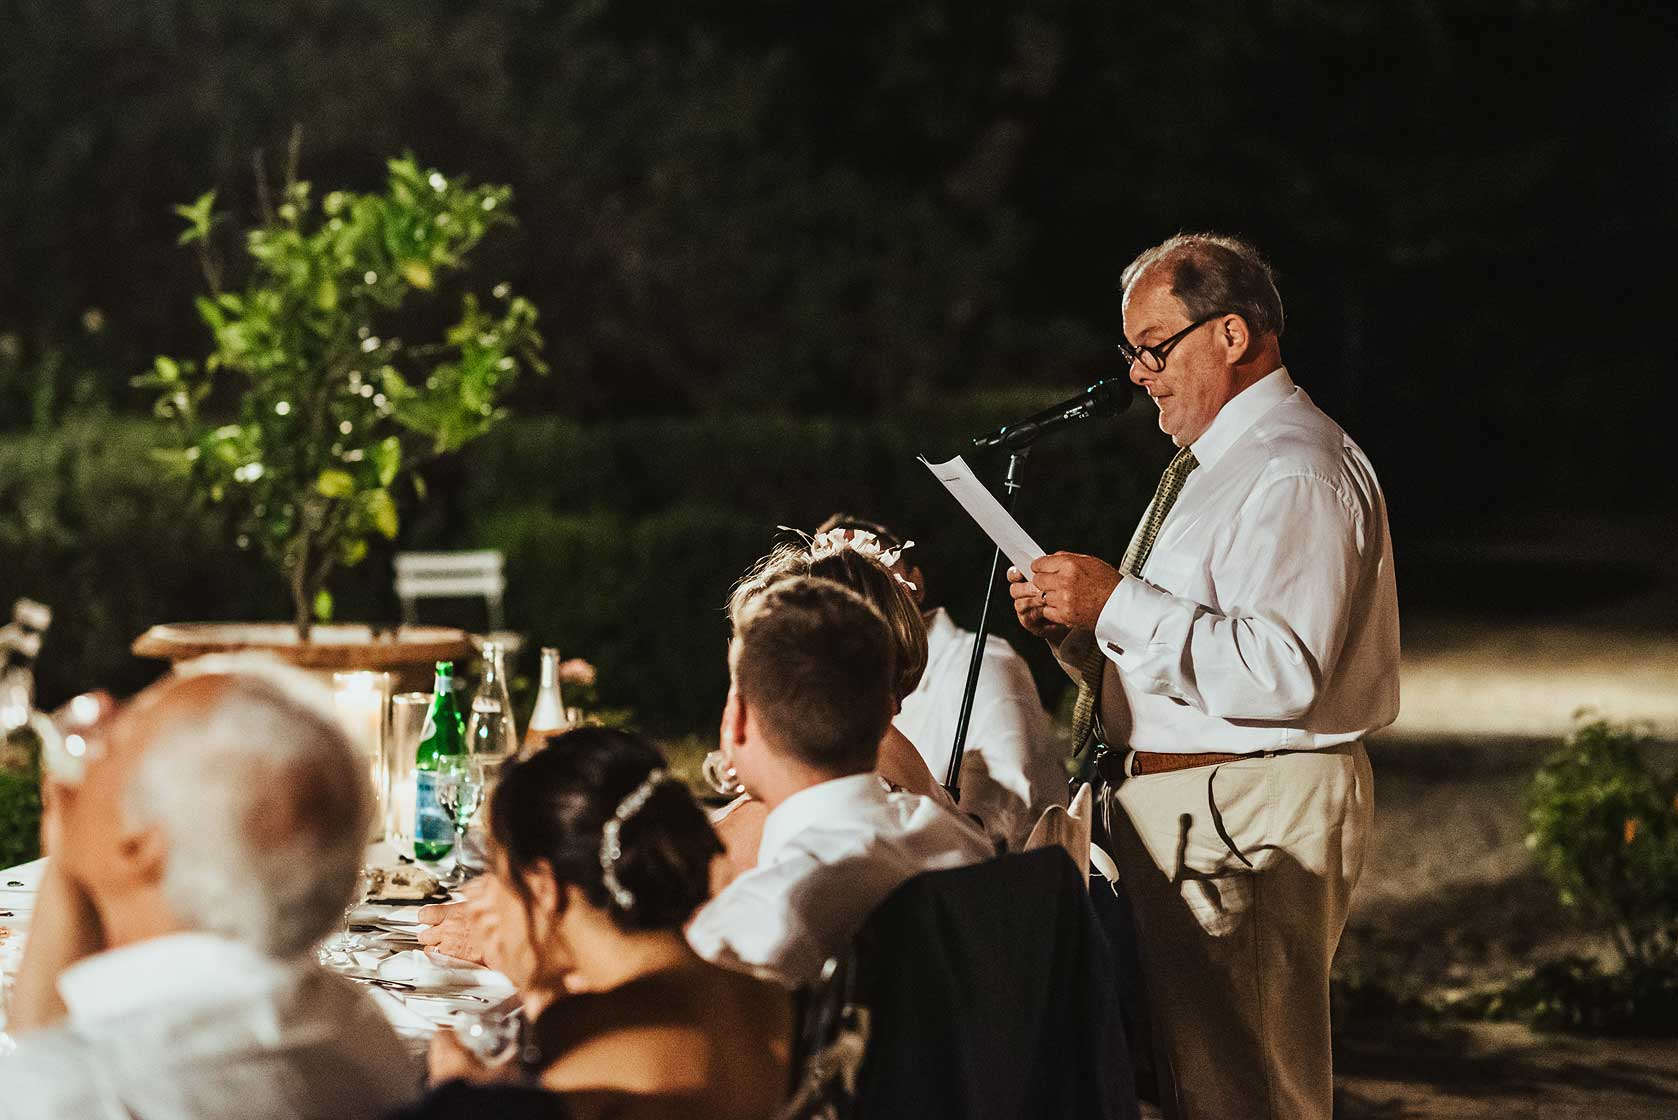 Reportage Wedding Photography in the Languedoc